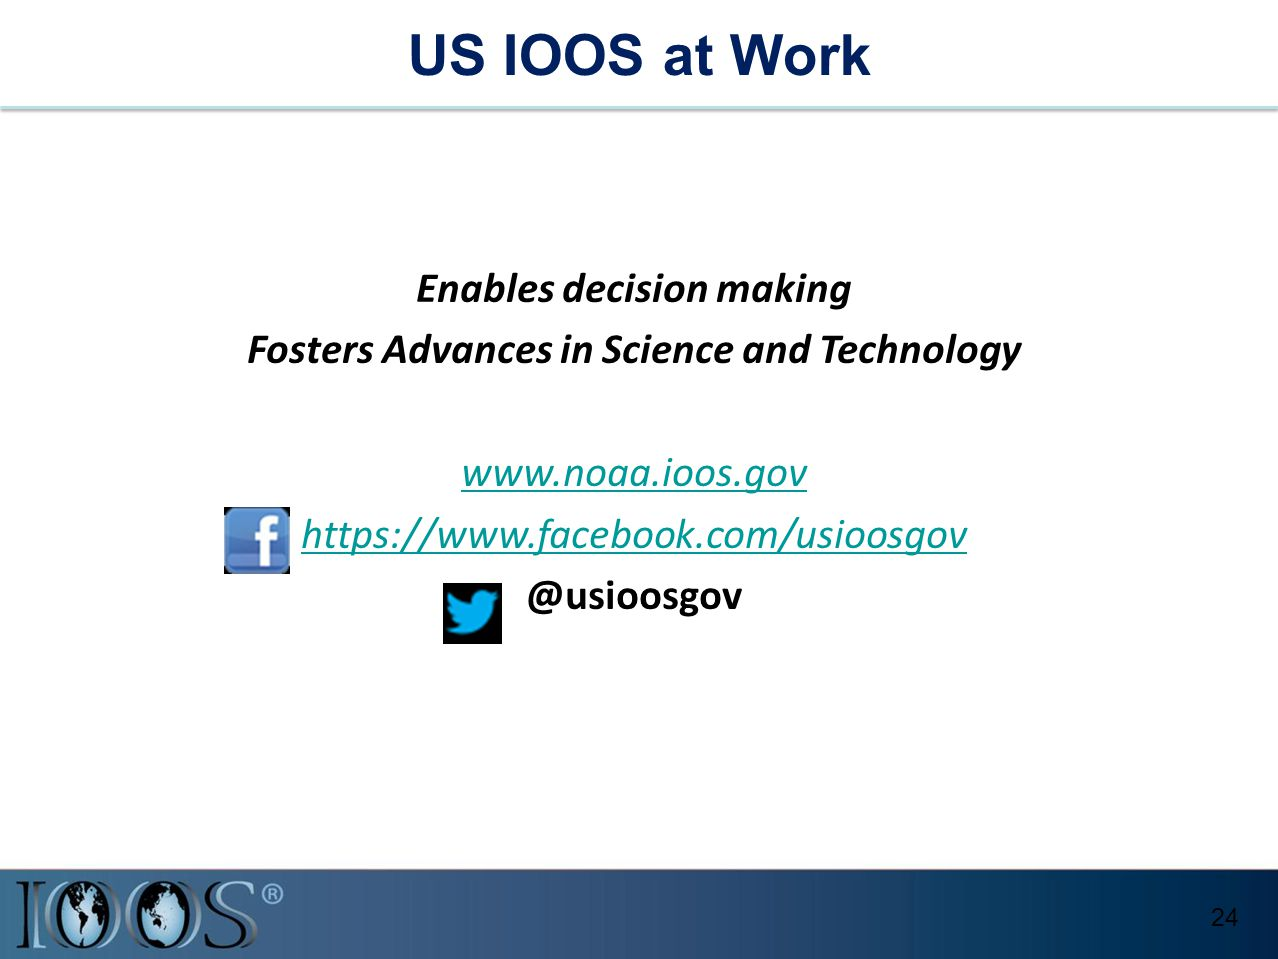 Enables decision making Fosters Advances in Science and Technology www.noaa.ioos.gov https://www.facebook.com/usioosgov @usioosgov US IOOS at Work 24